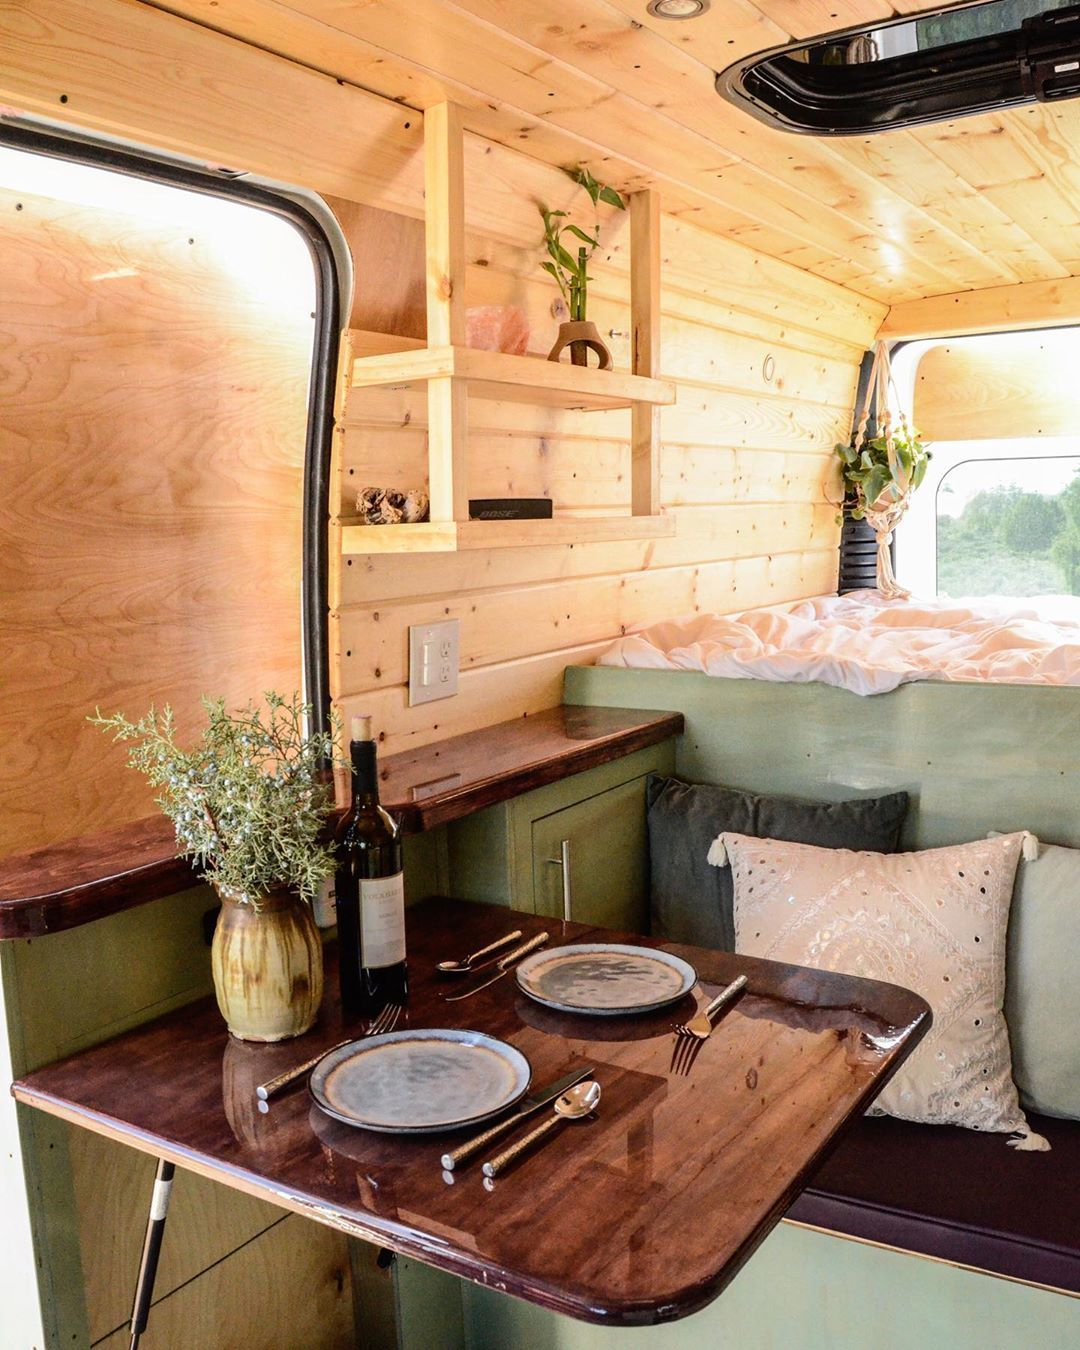 "Photo of Stinson Vans on Instagram: ""Looking for your dream van? Let me build a van like this; but just for you. I have an open time slot for a custom build this fall. The…"""